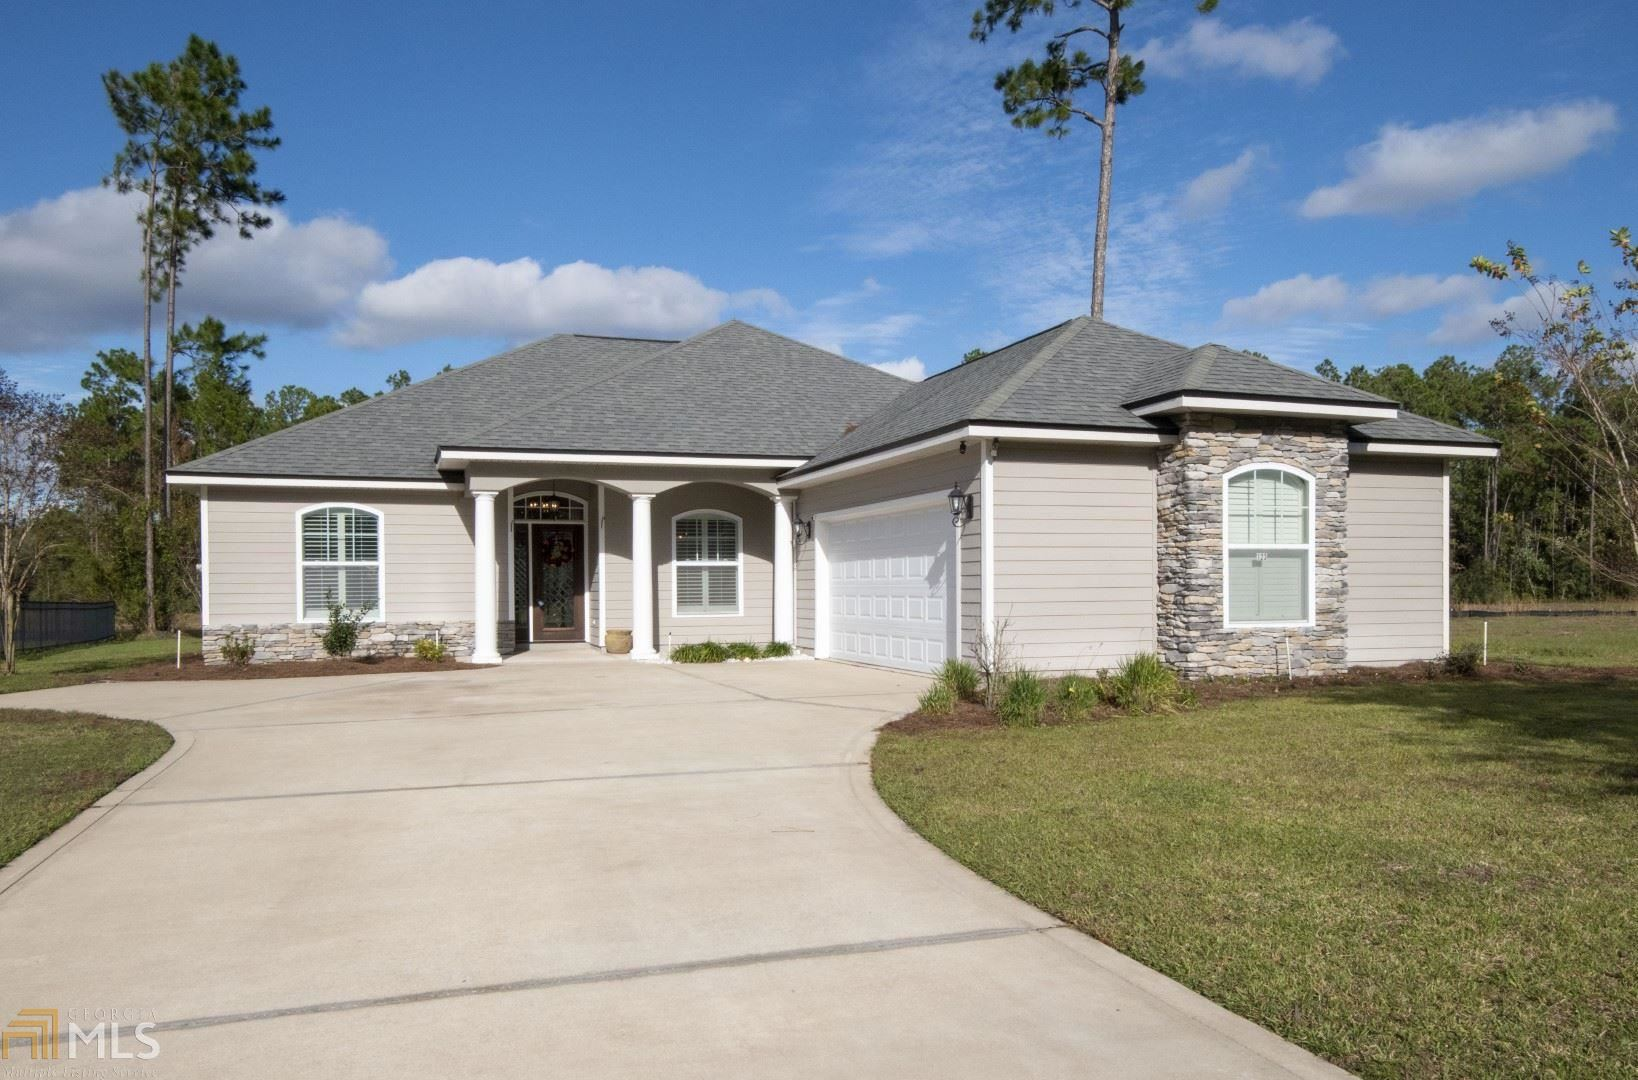 Photo of 123 Oarsman Xing, St. Marys, GA 31558 (MLS # 8895358)